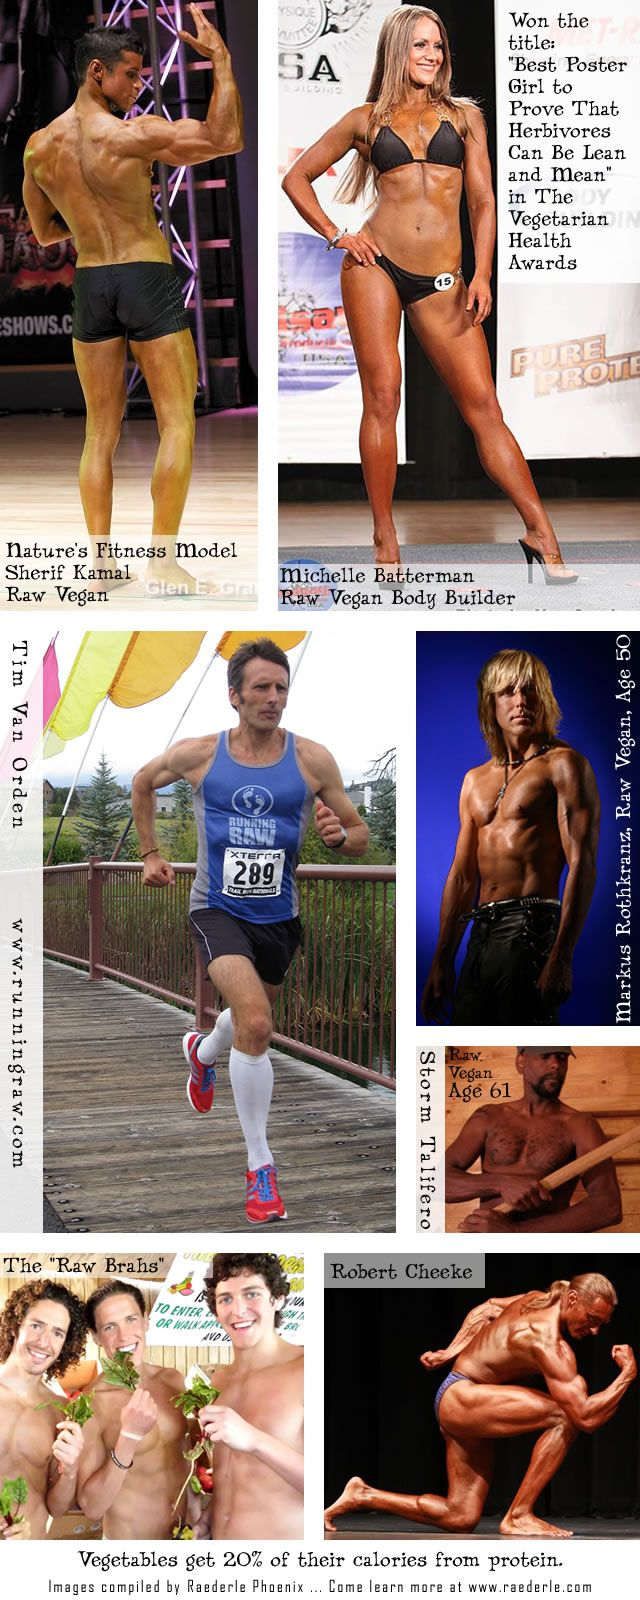 Raw Vegan Muscle Comes From Vegetables Poster compiled by Raederle